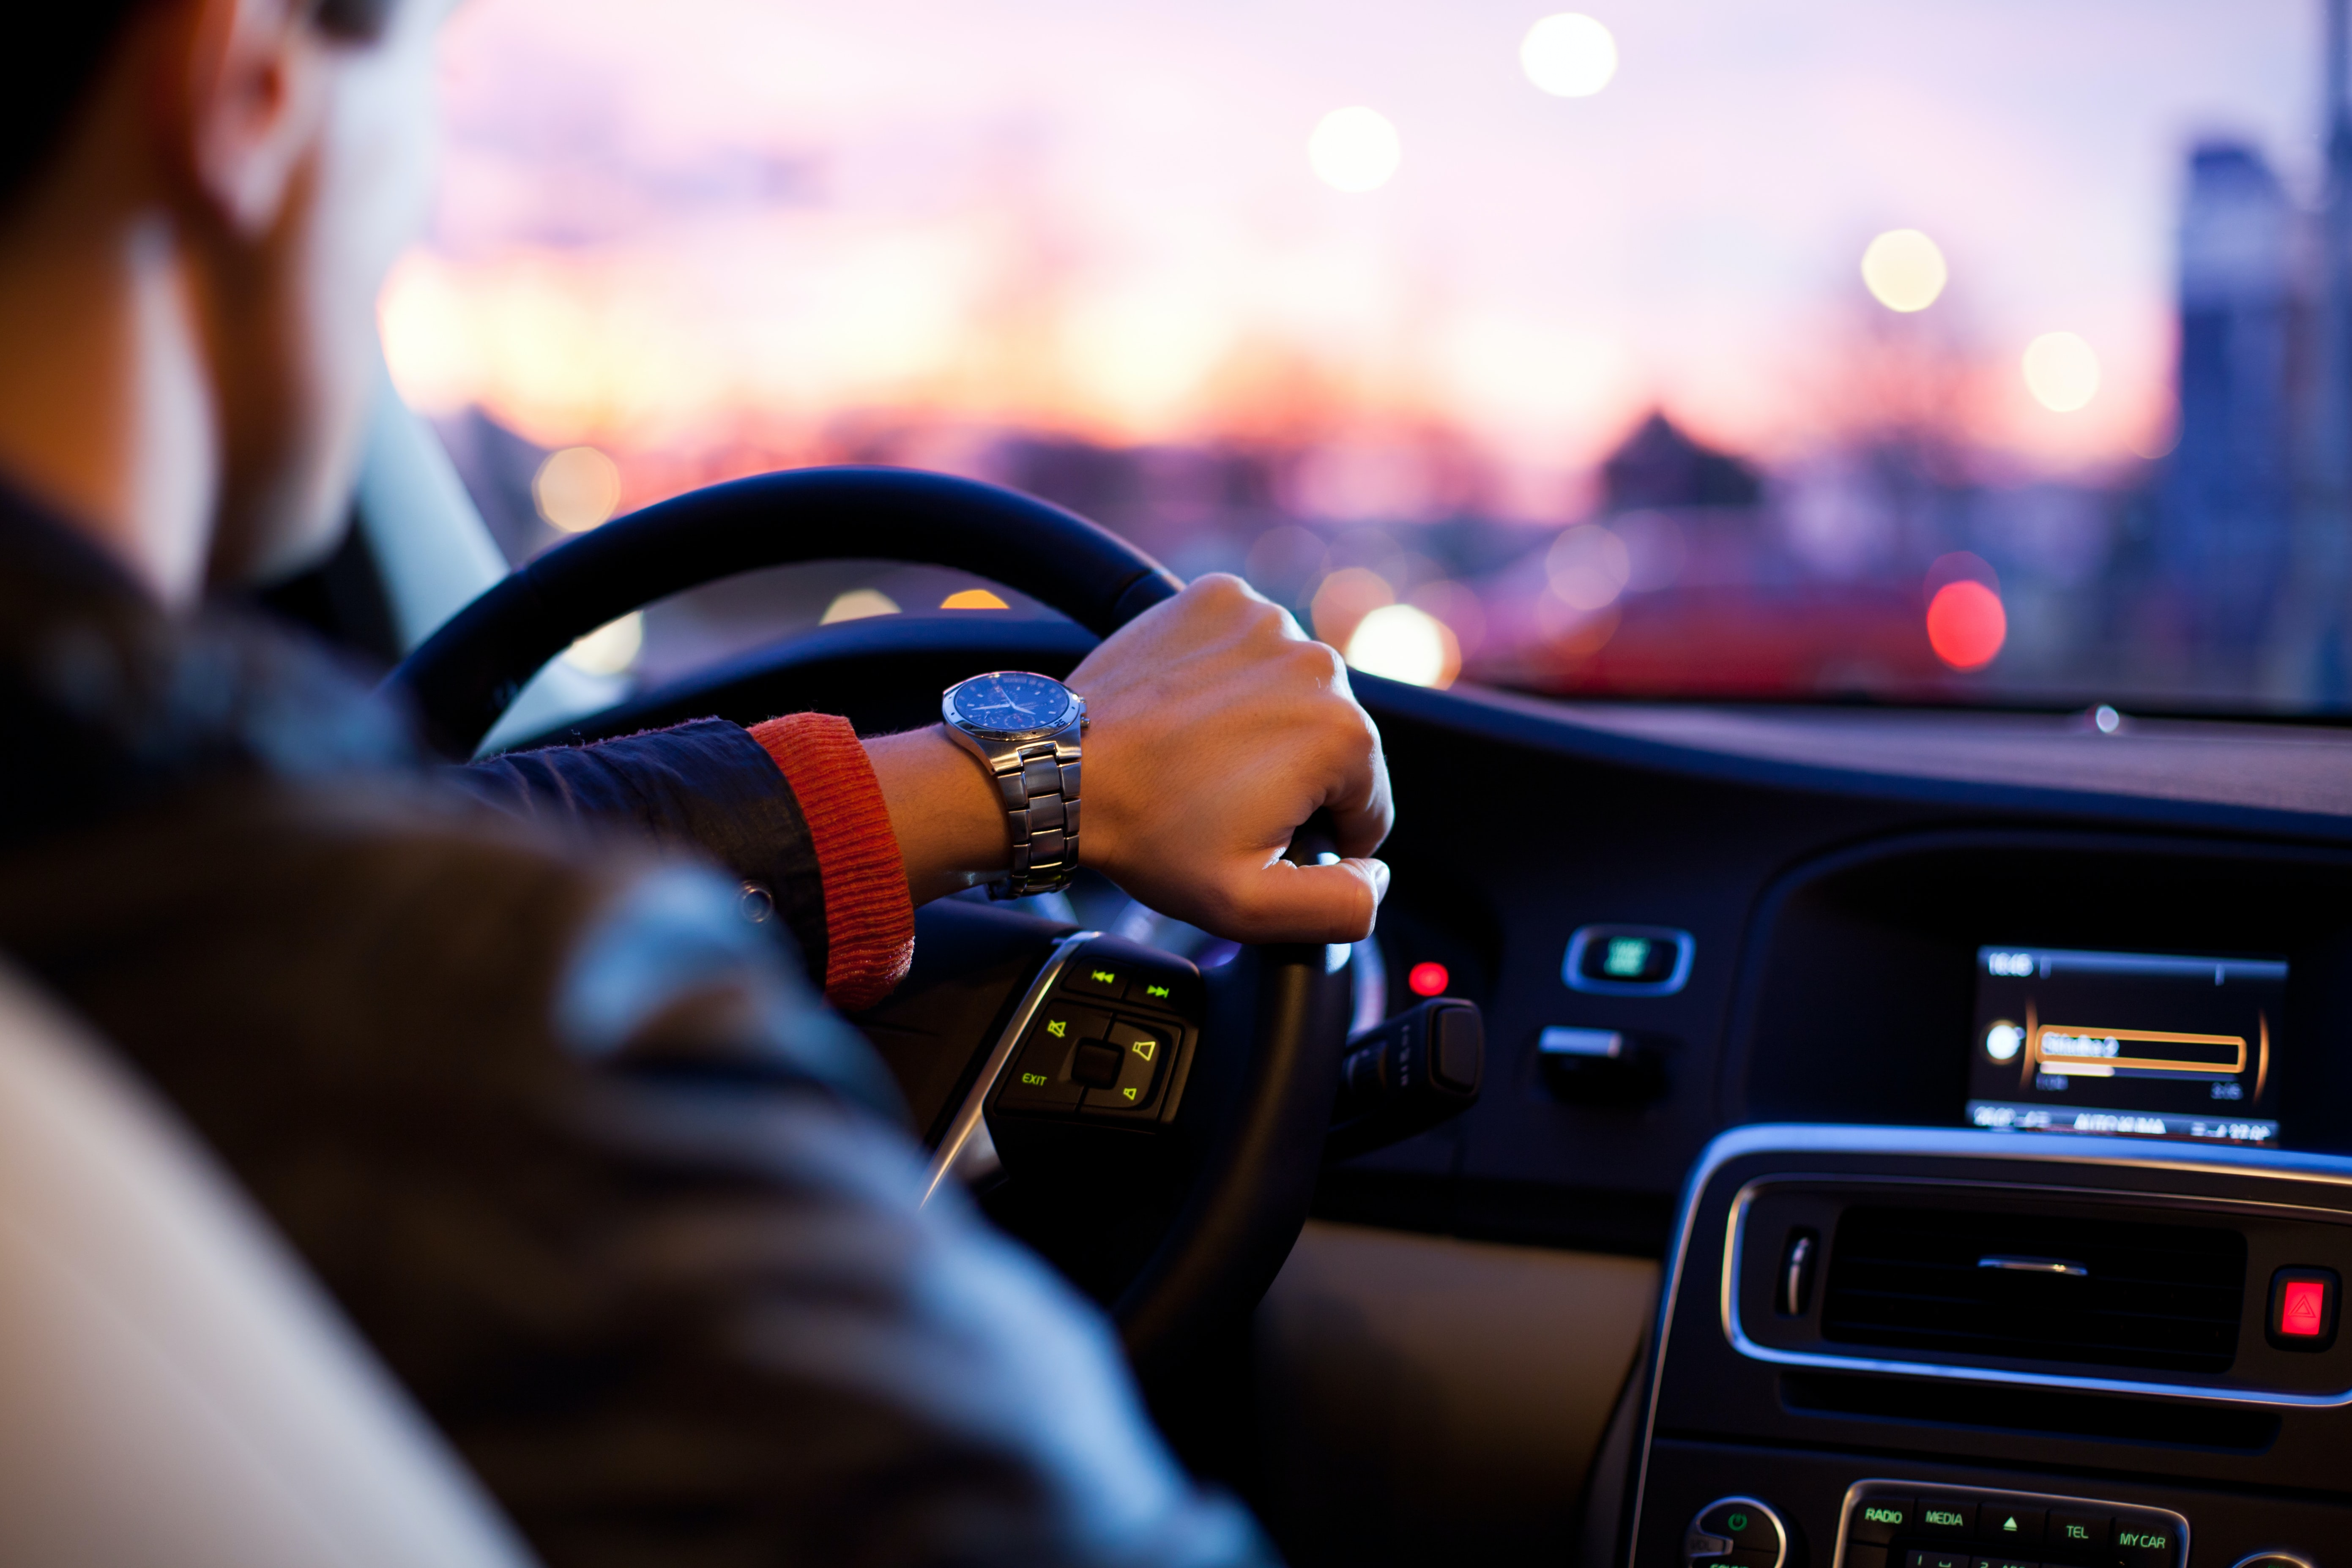 Close up of a man with watch driving a car, hand on steering wheel, dashboard lights